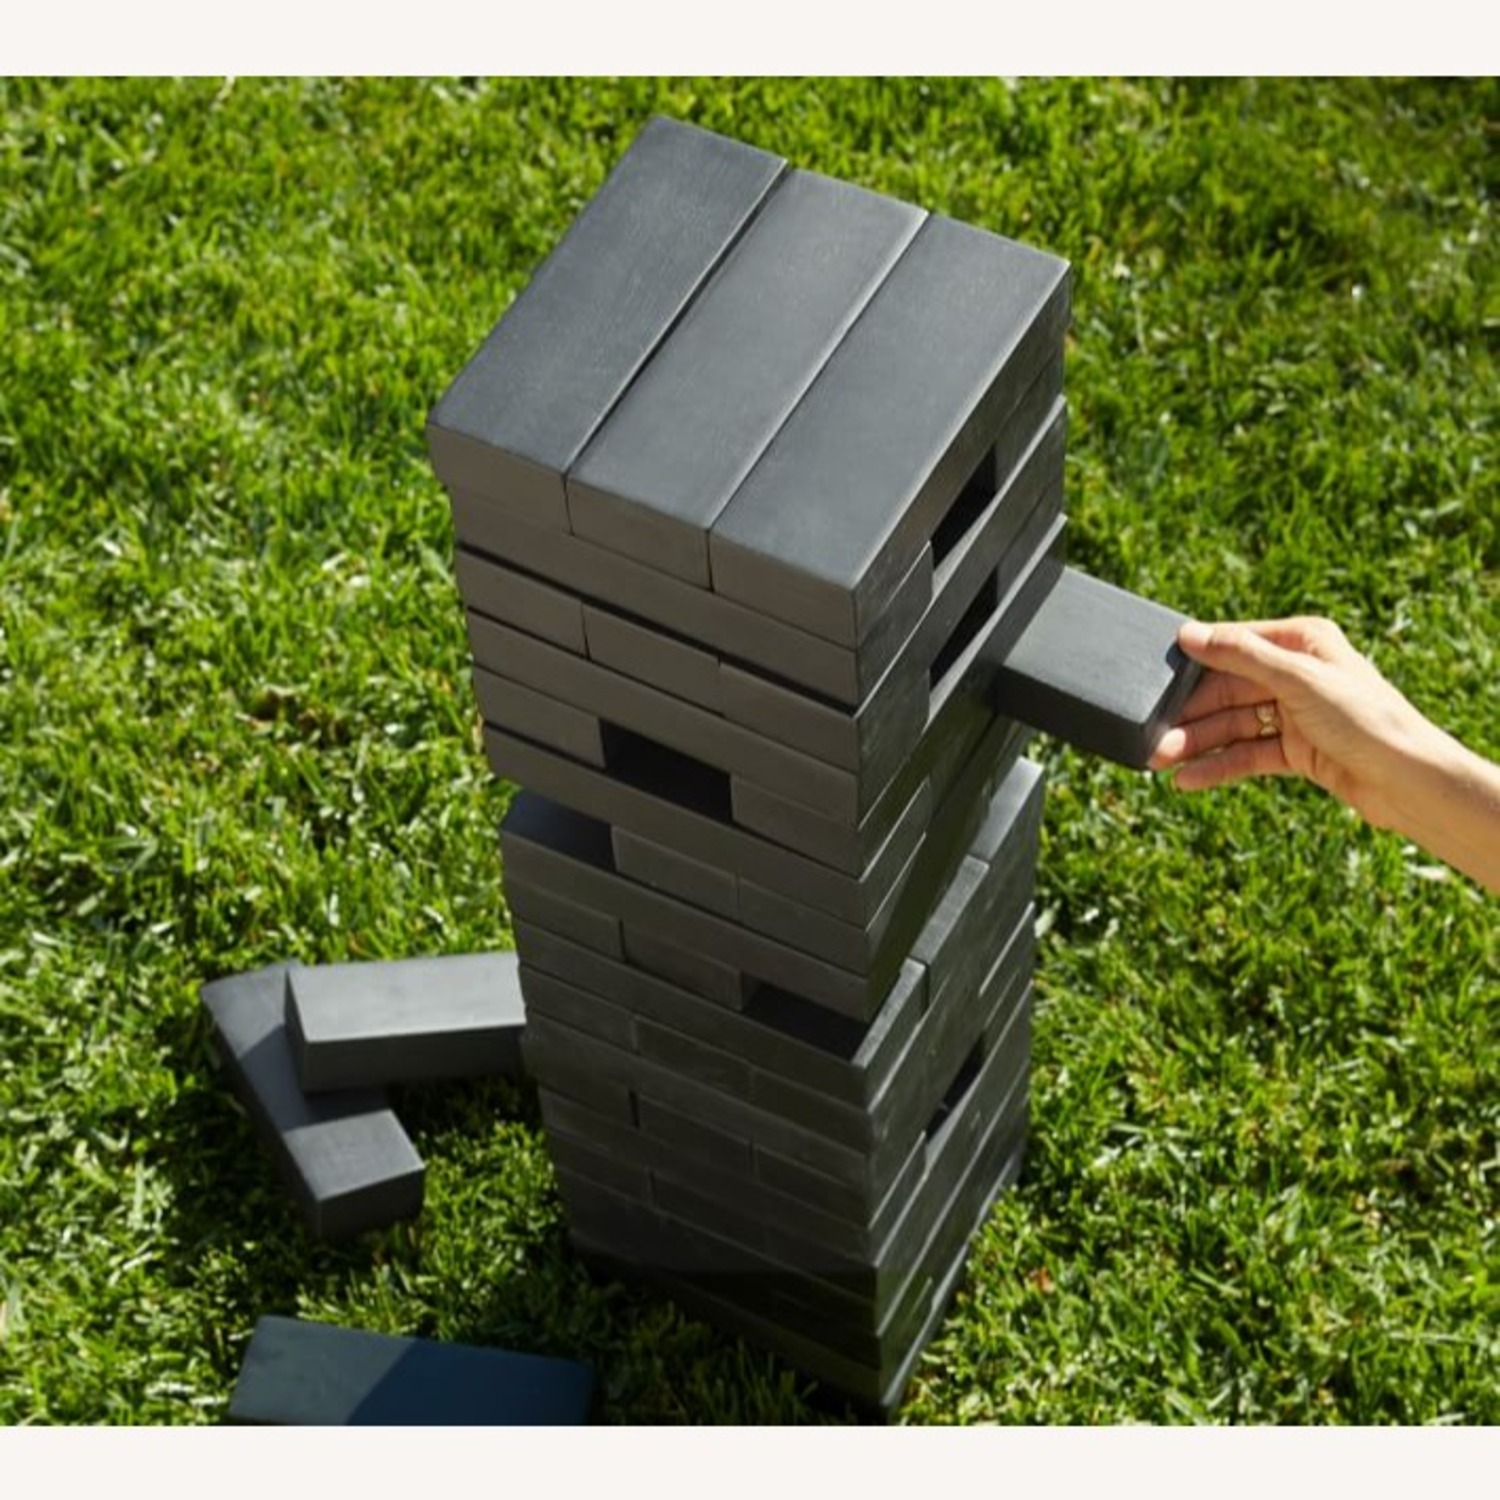 Pottery Barn Outdoor Xl Tumbling Tower,Black - image-3